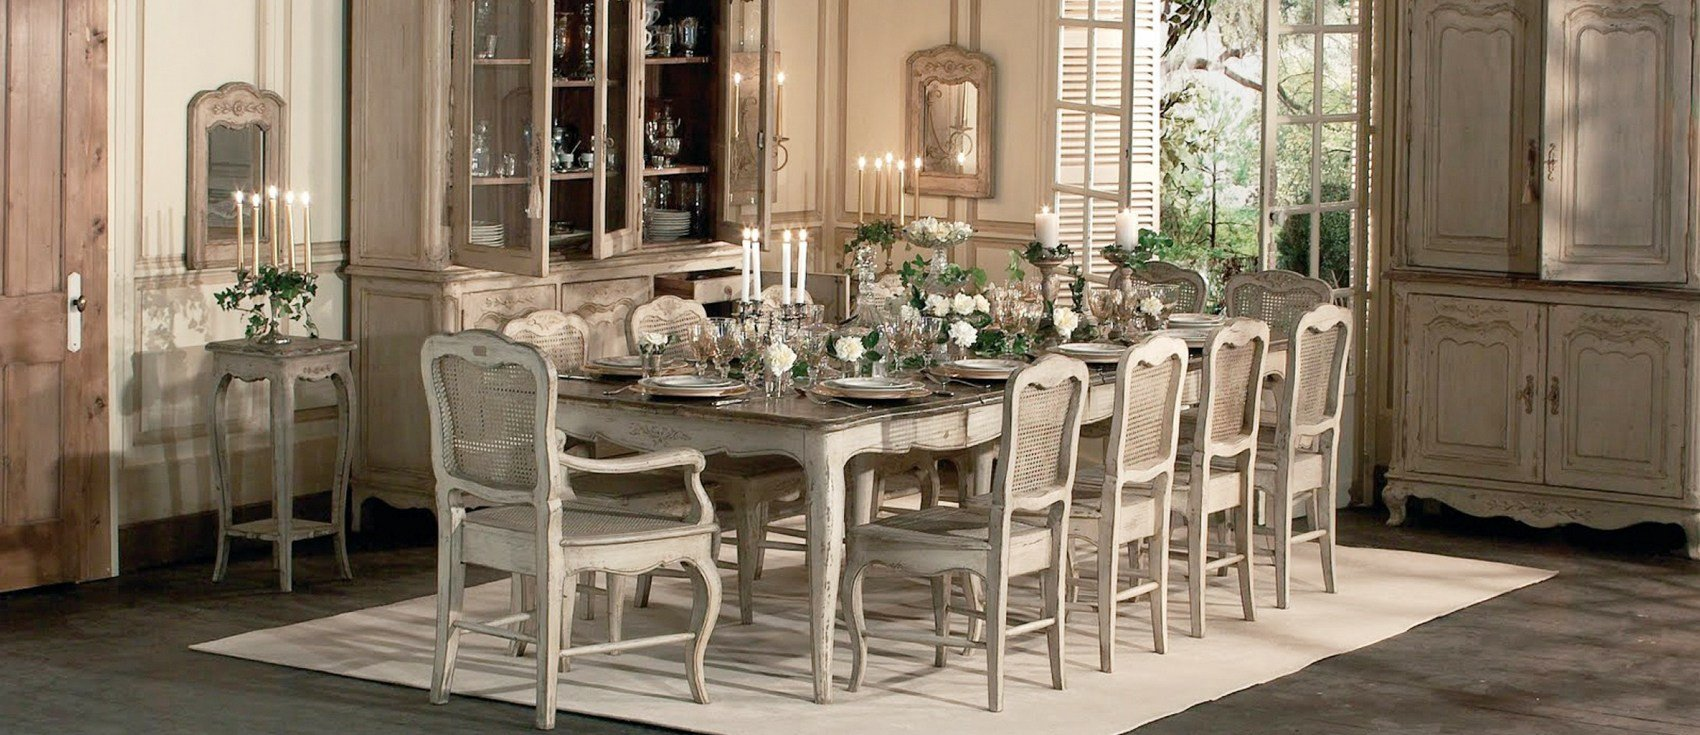 Images Of French Country Decor Inspirational French Country Decor & French Country Decorating Ideas